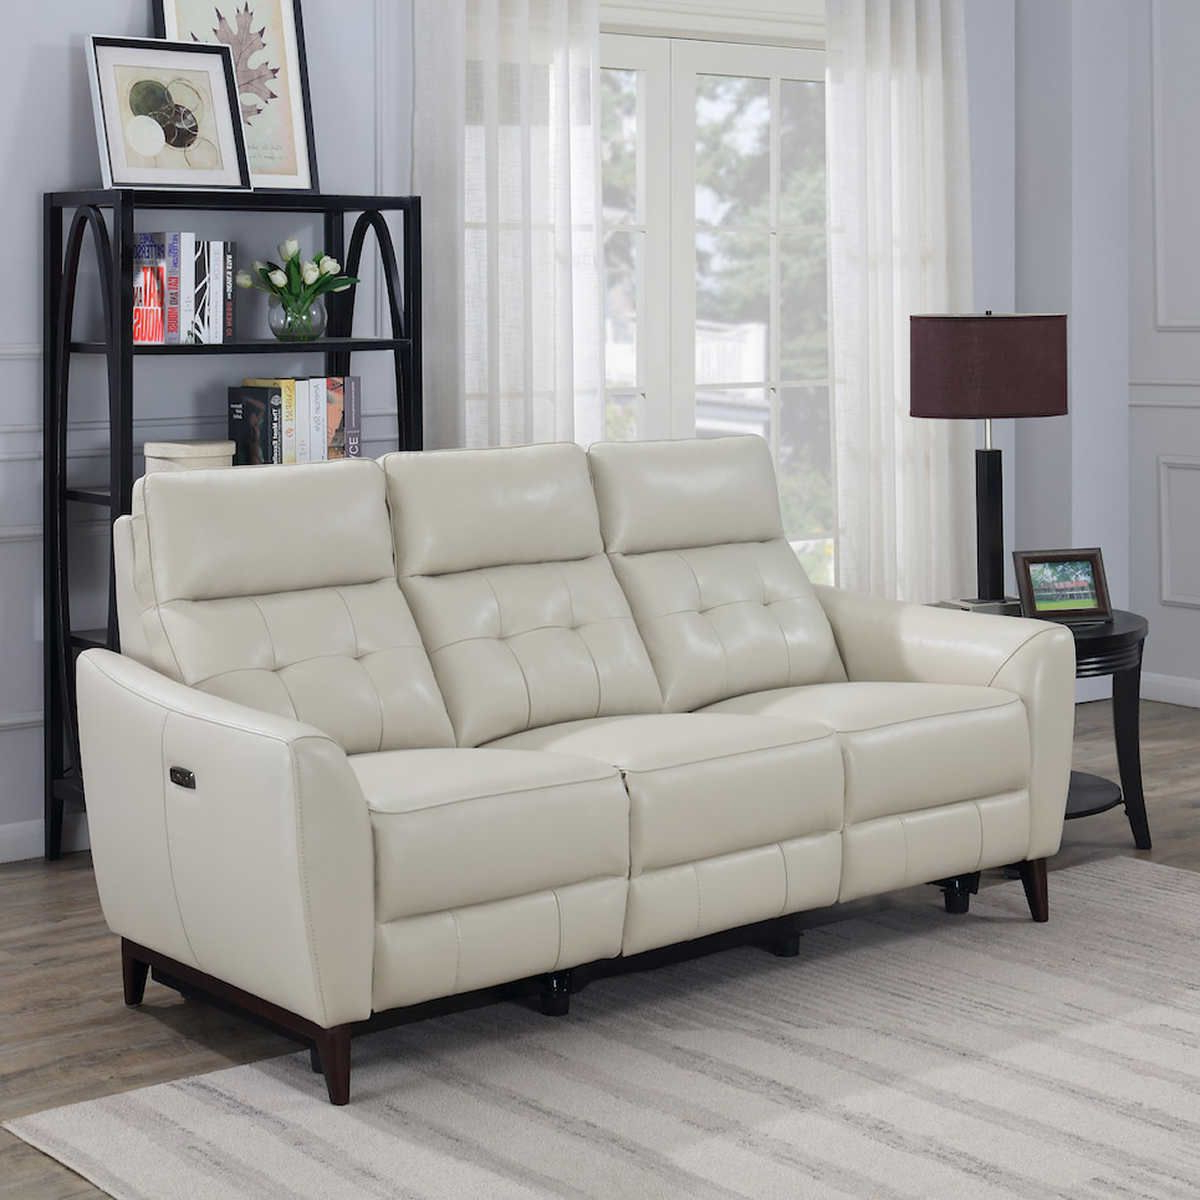 2017 Timmons Leather Power Reclining Sofa With Power Headrest Regarding Nolan Leather Power Reclining Sofas (View 15 of 15)